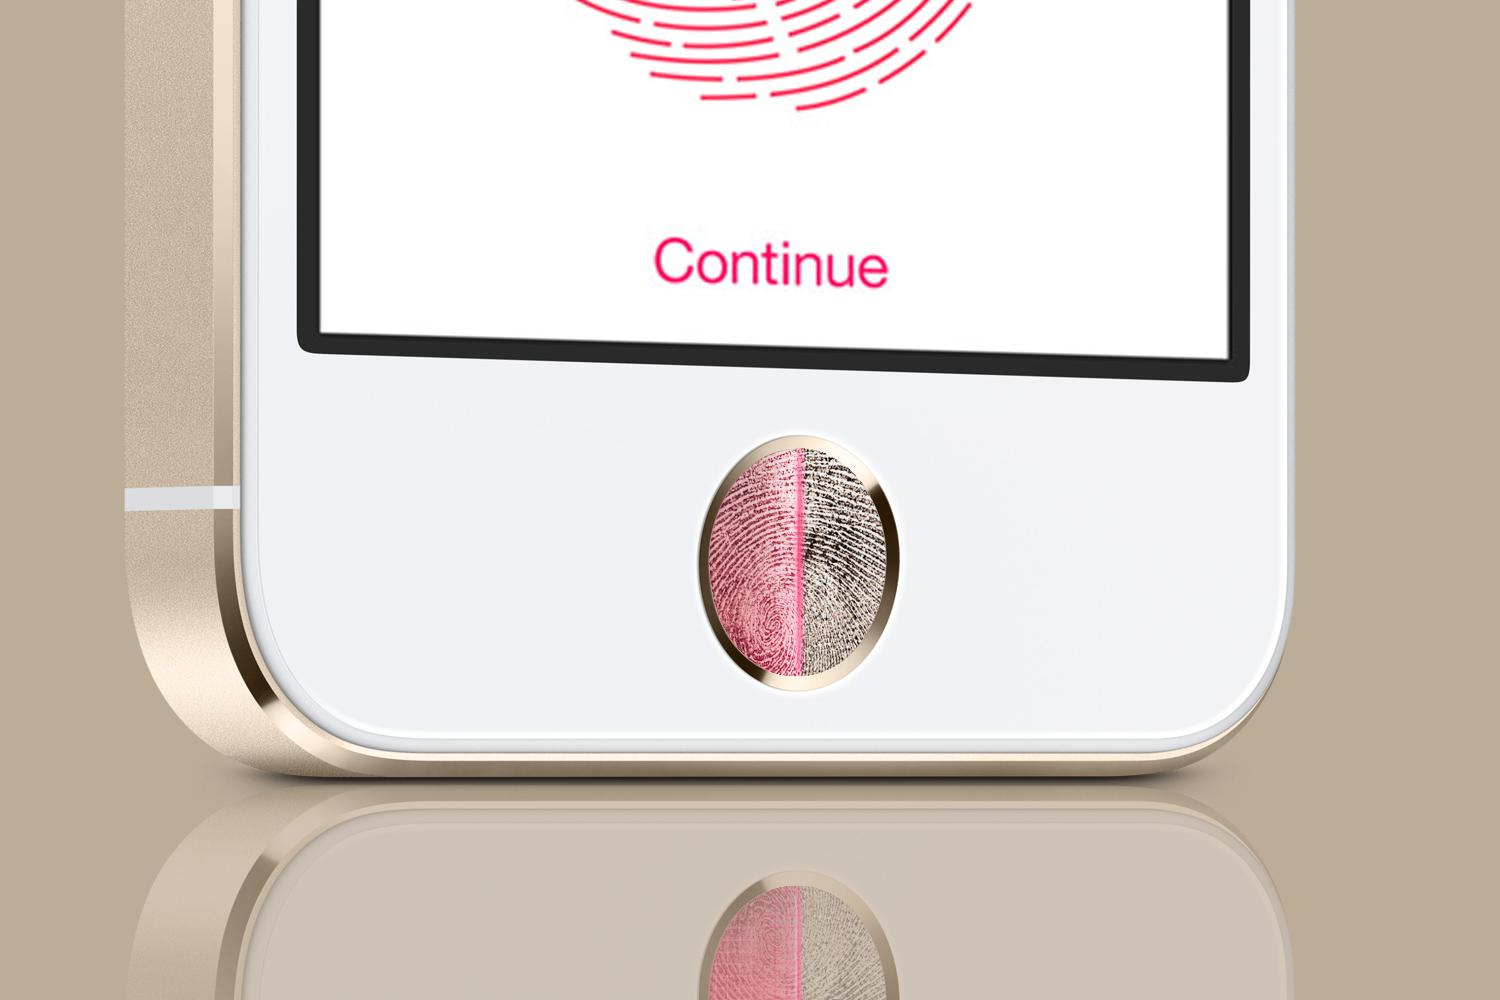 fingerprint lock best cases for iphone 5cApple iPhone 5S Touch ID fingerprint sensor  What you need to know sUFCEKZJ